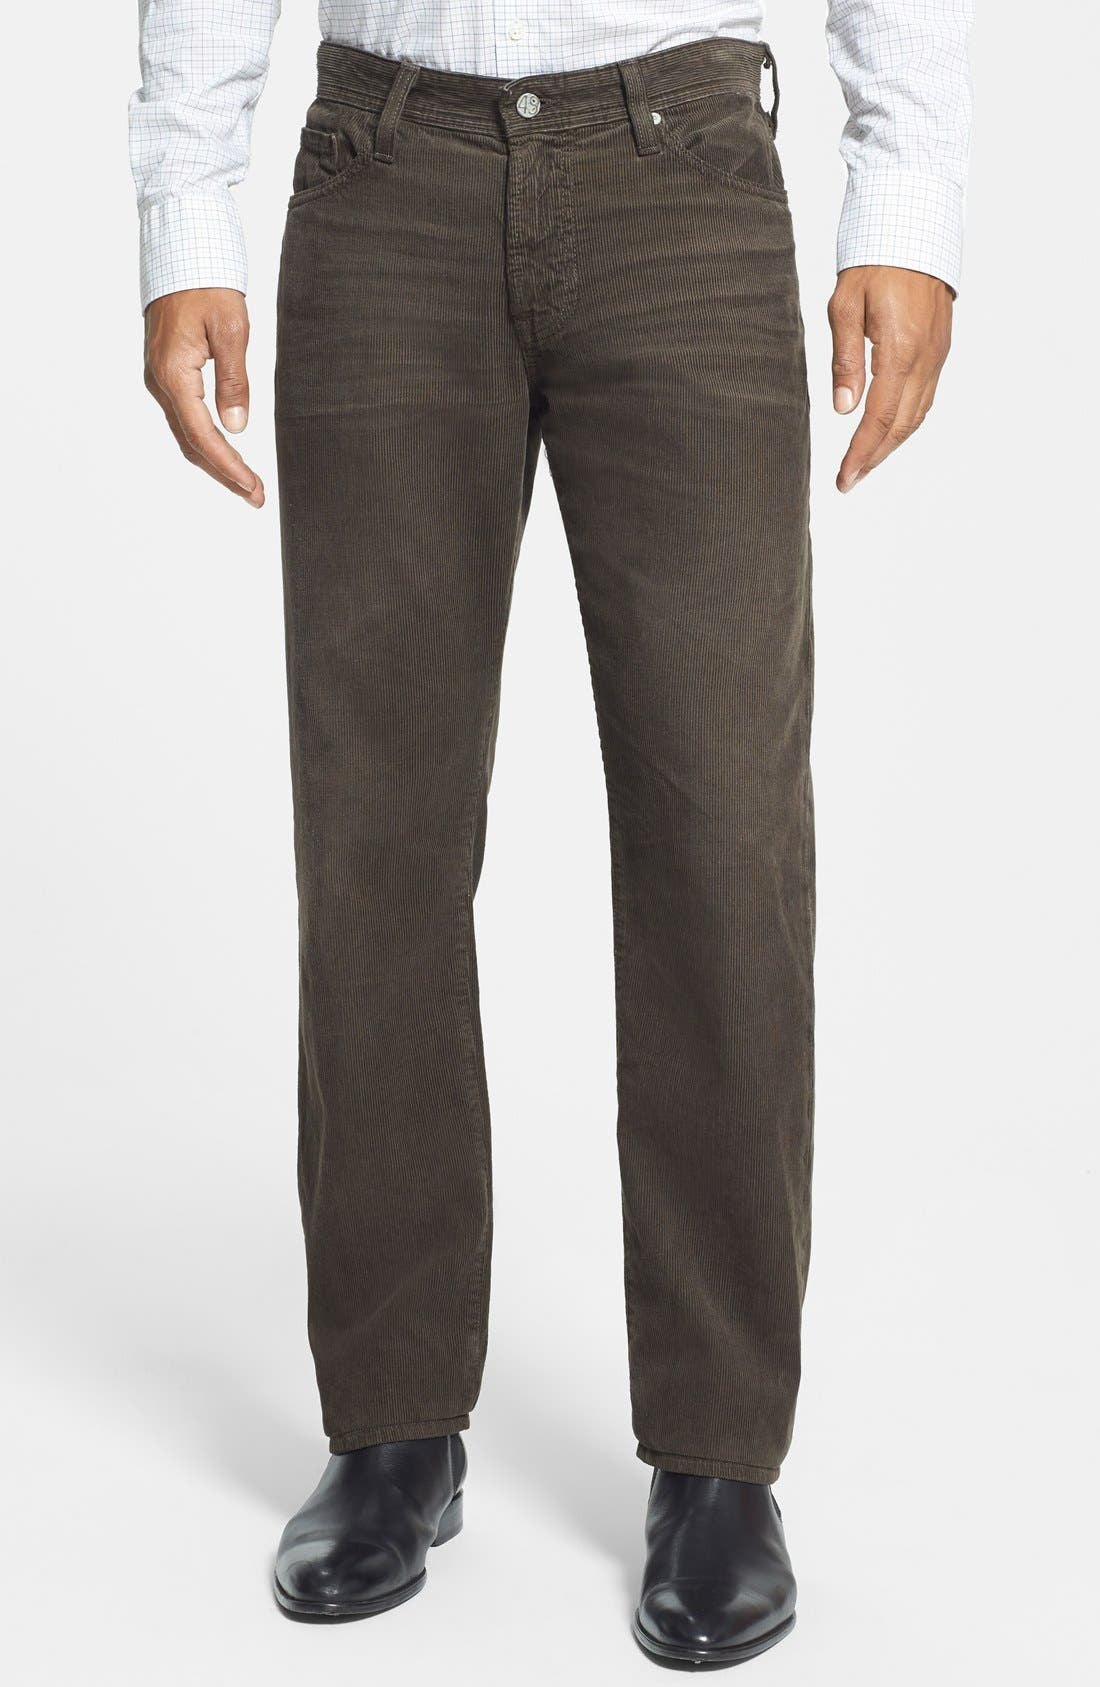 'Graduate' Tailored Straight Leg Corduroy Pants,                             Main thumbnail 7, color,